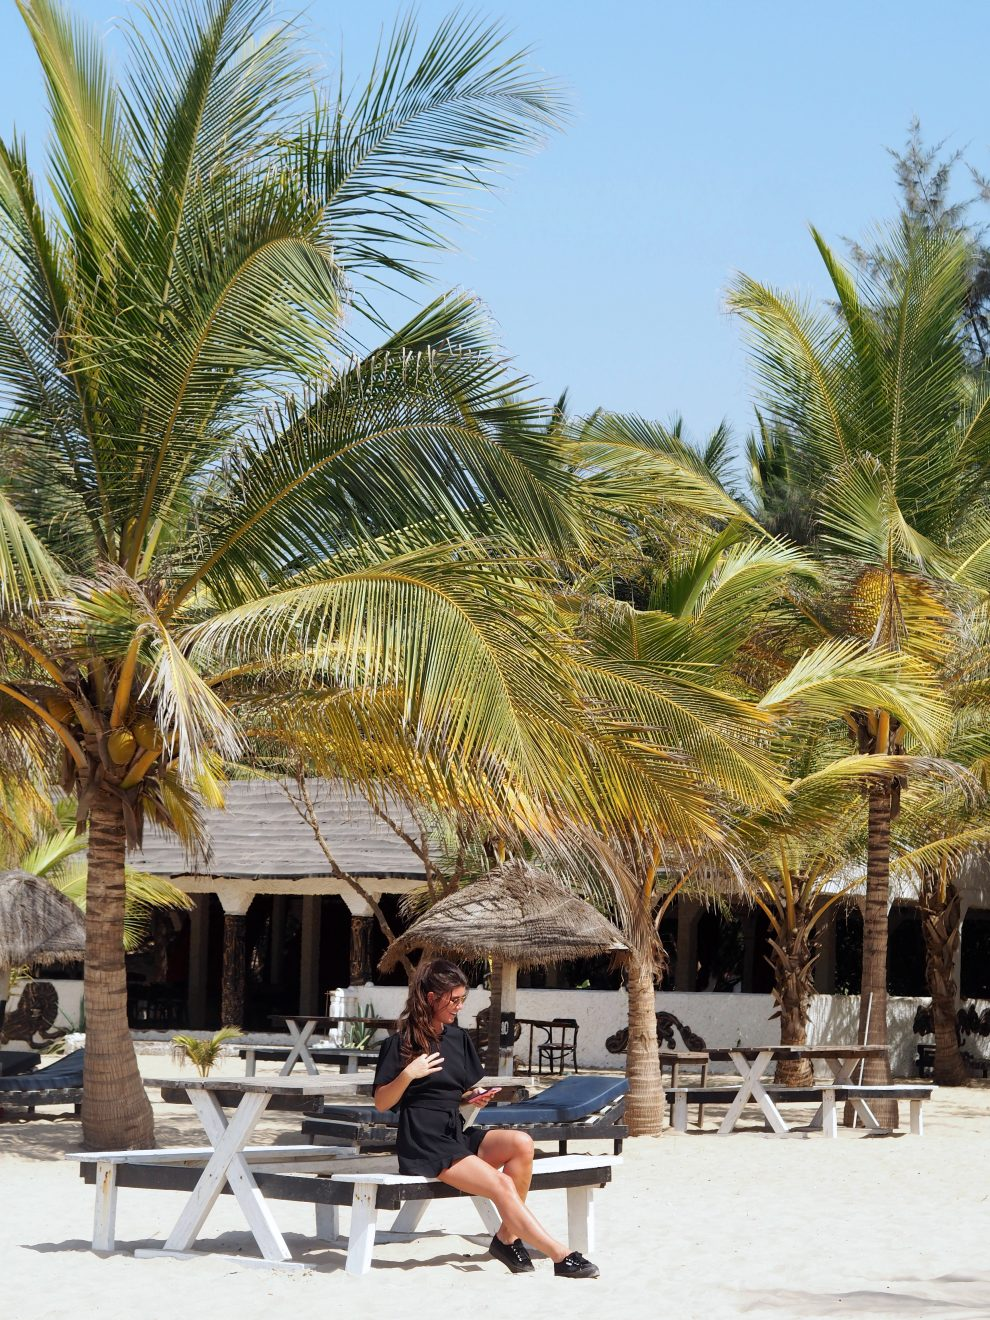 De Gambia vakantiegids Paradise Beach (Jungle beachclub) Gambia